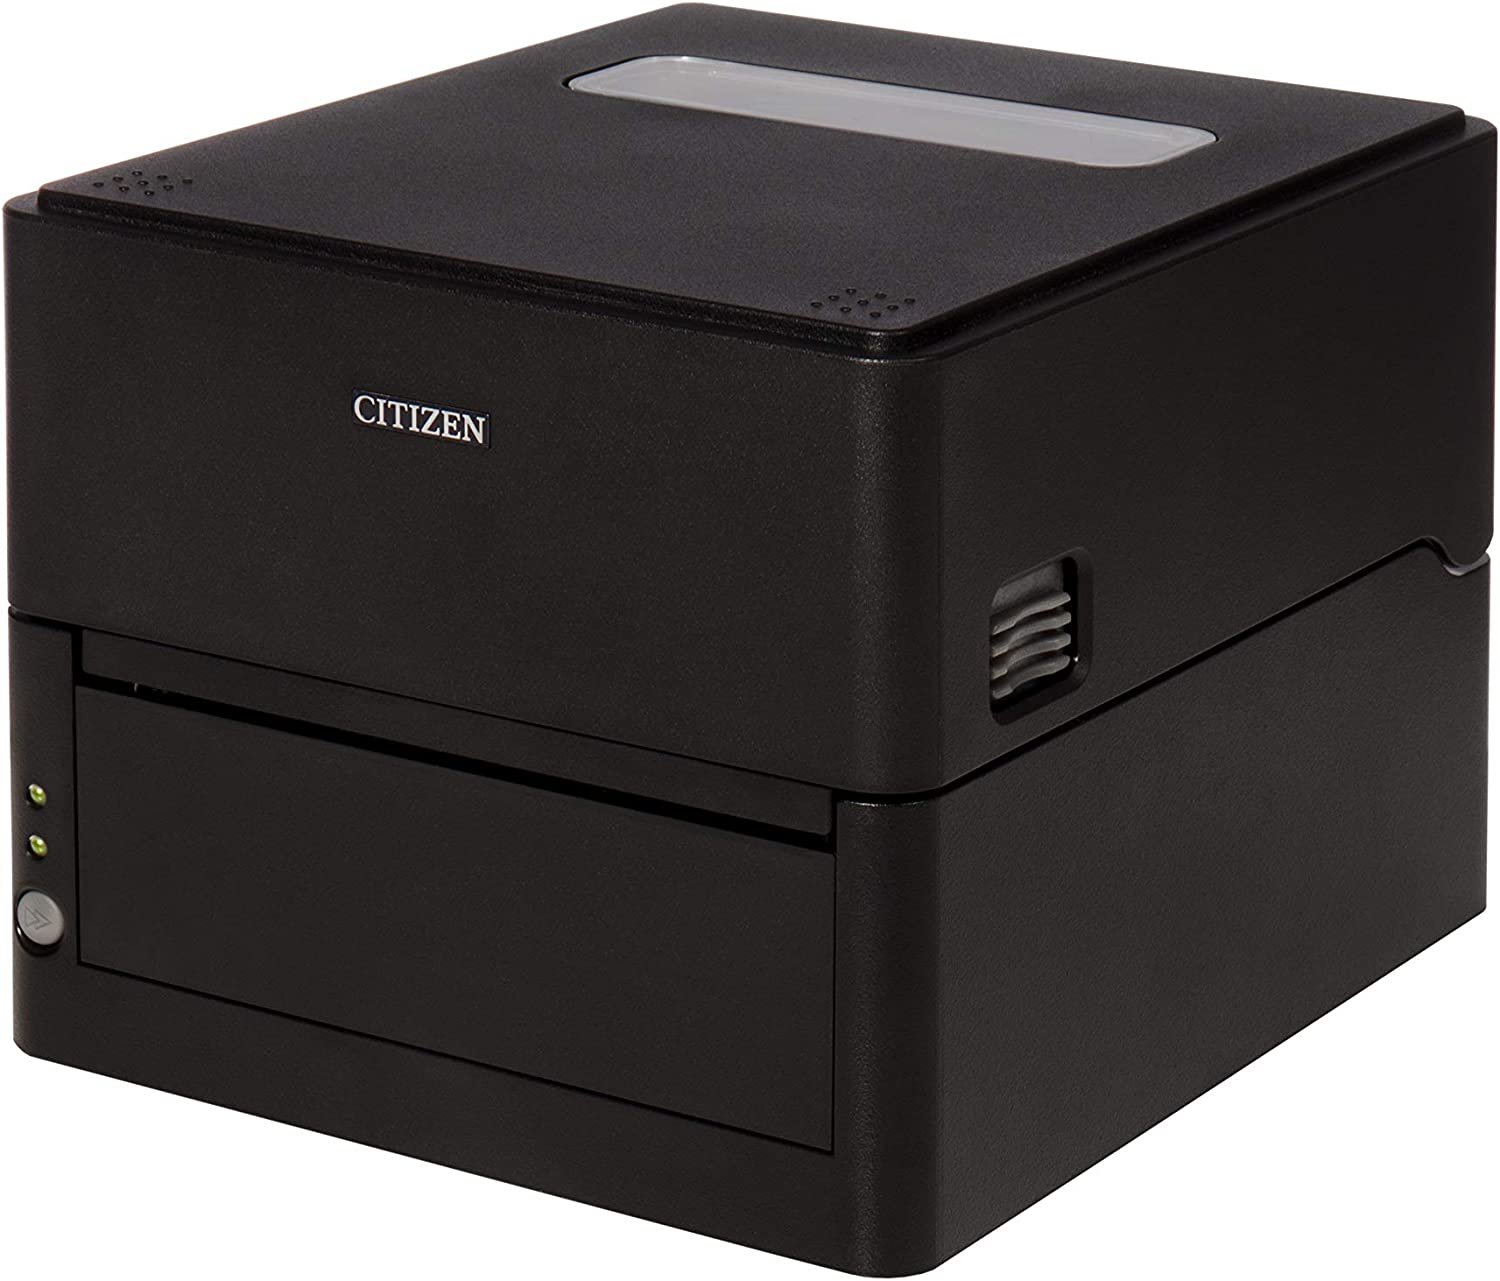 Citizen Thermal Label Printer - LAN (Ethernet) Commercial Grade Thermal Label Printer Compatible with Amazon, Ebay, Etsy, Shopify, Barcodes, Labeling, Emuluates ZP450 Zebra Printers CLE-300